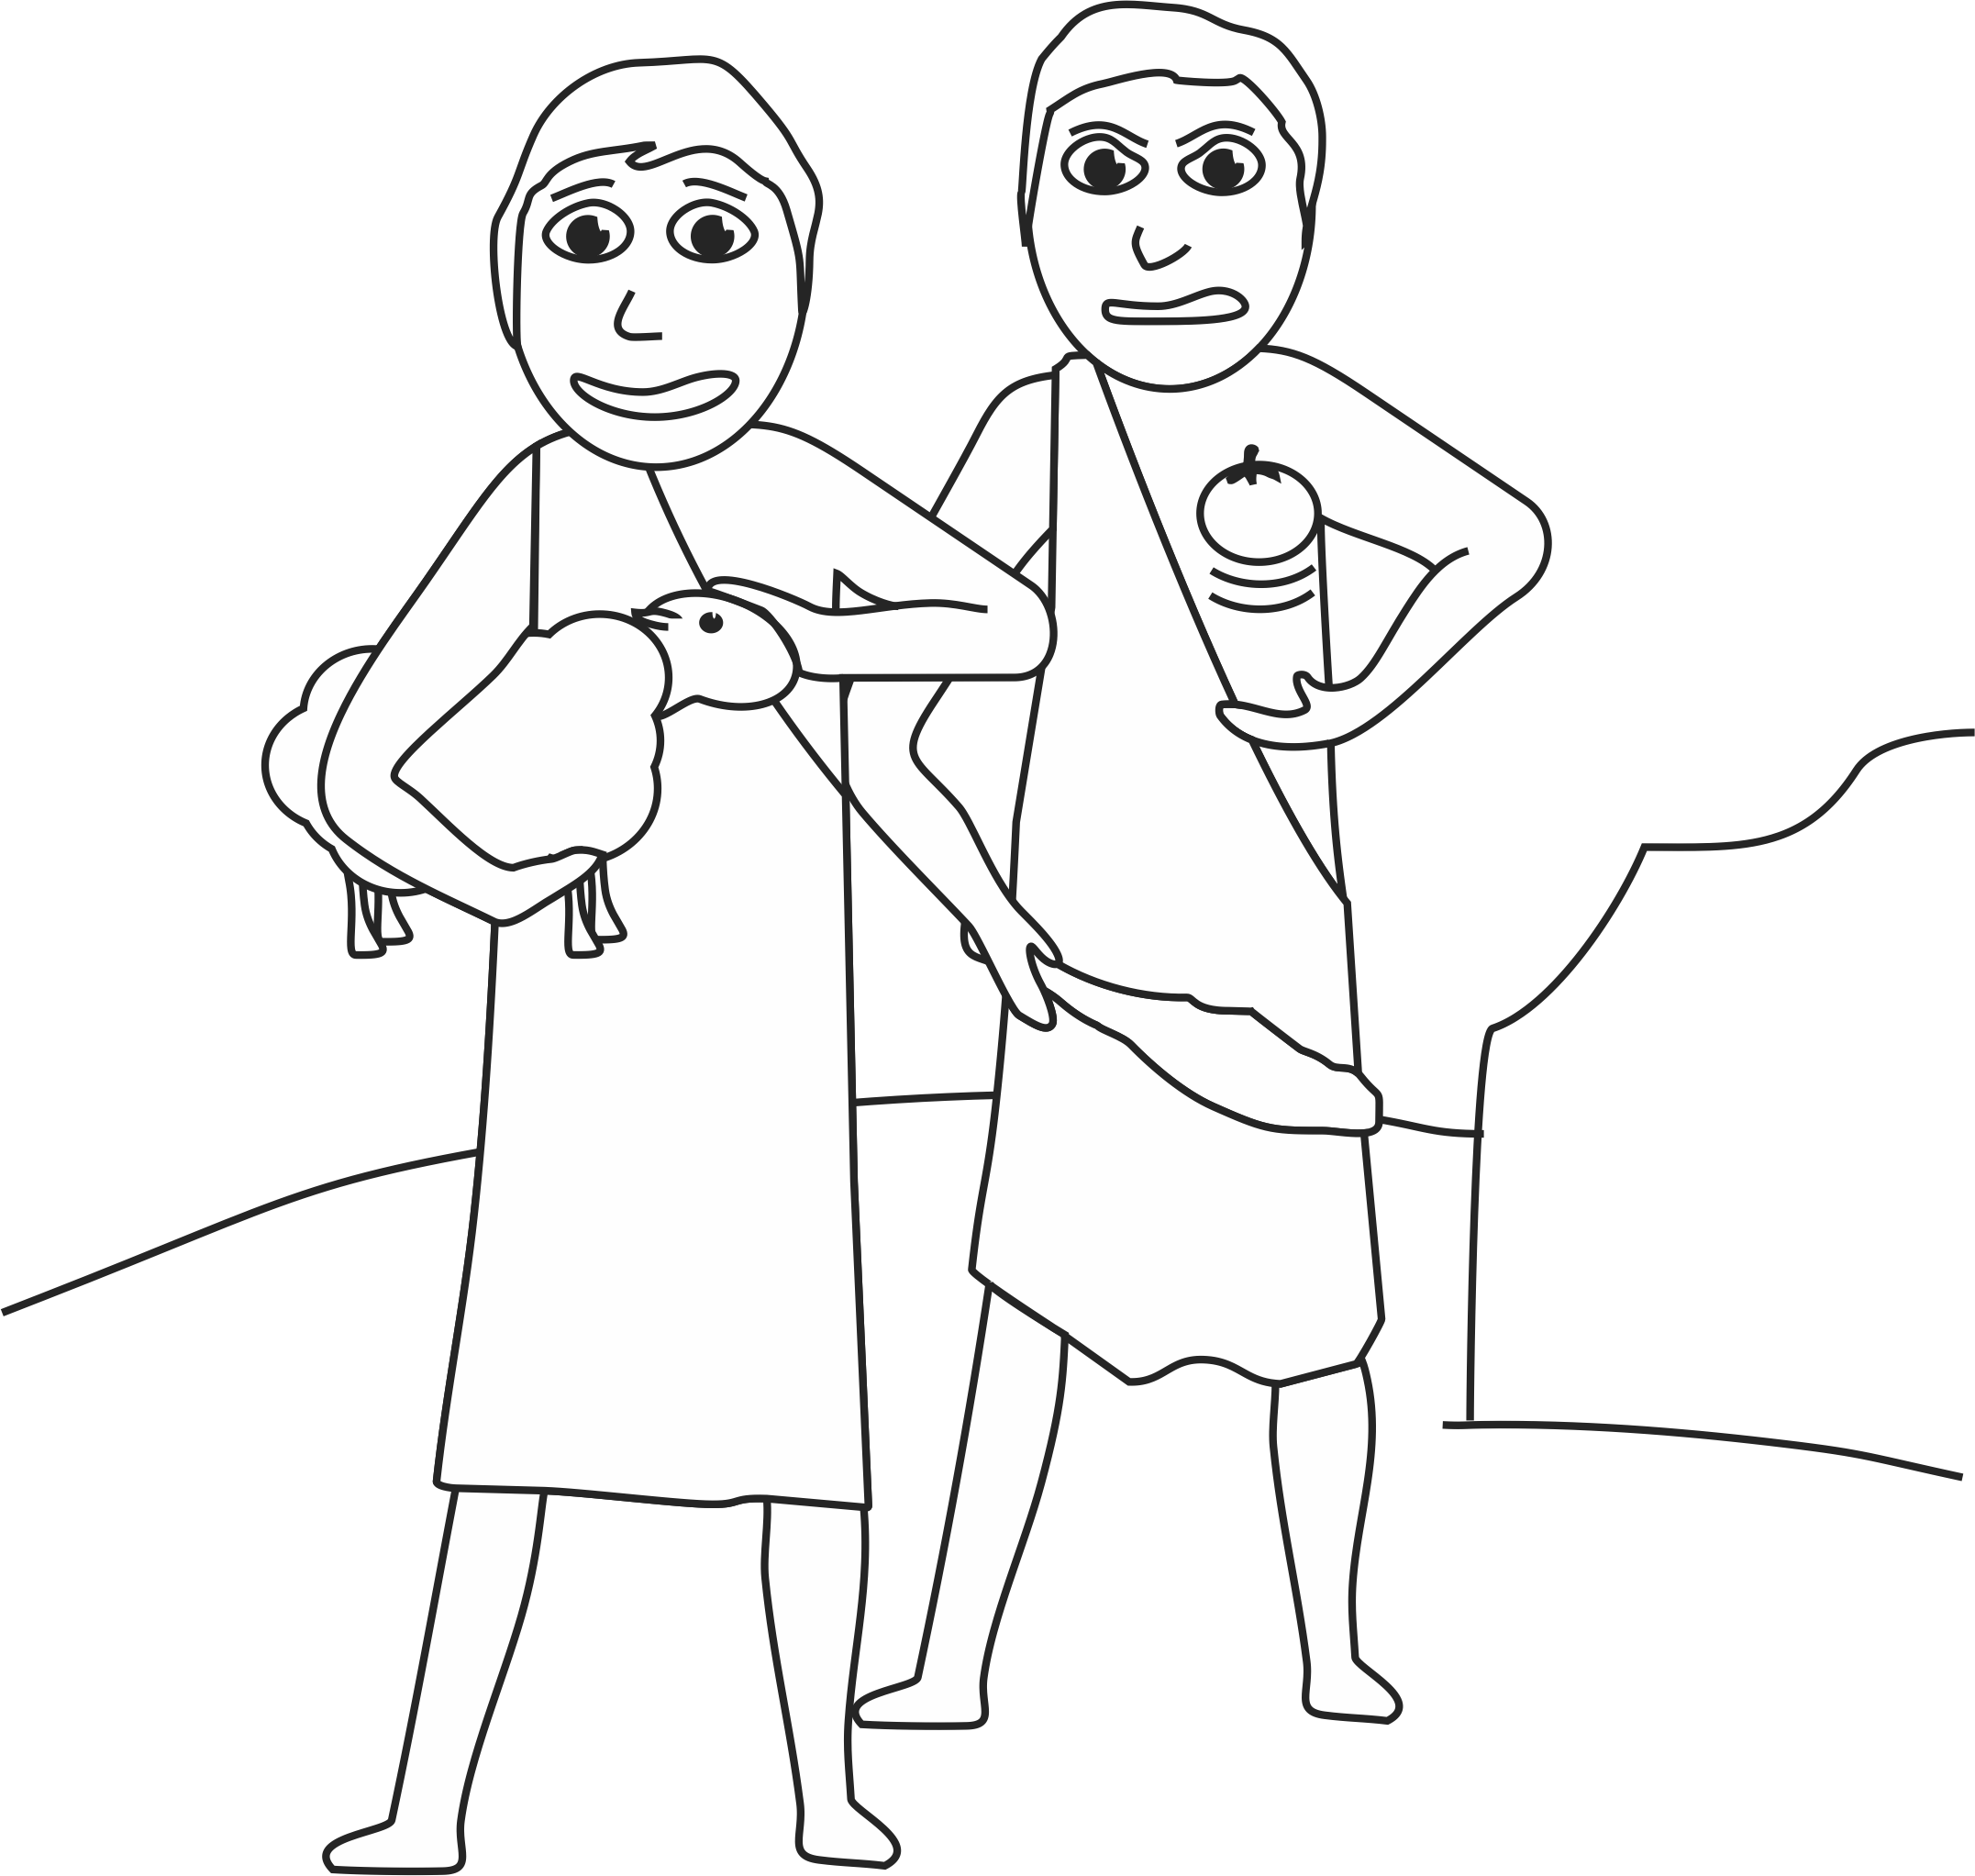 cain and abel coloring pages cainoeabele21jpg 9191056 bible cain and abel abel coloring pages and cain